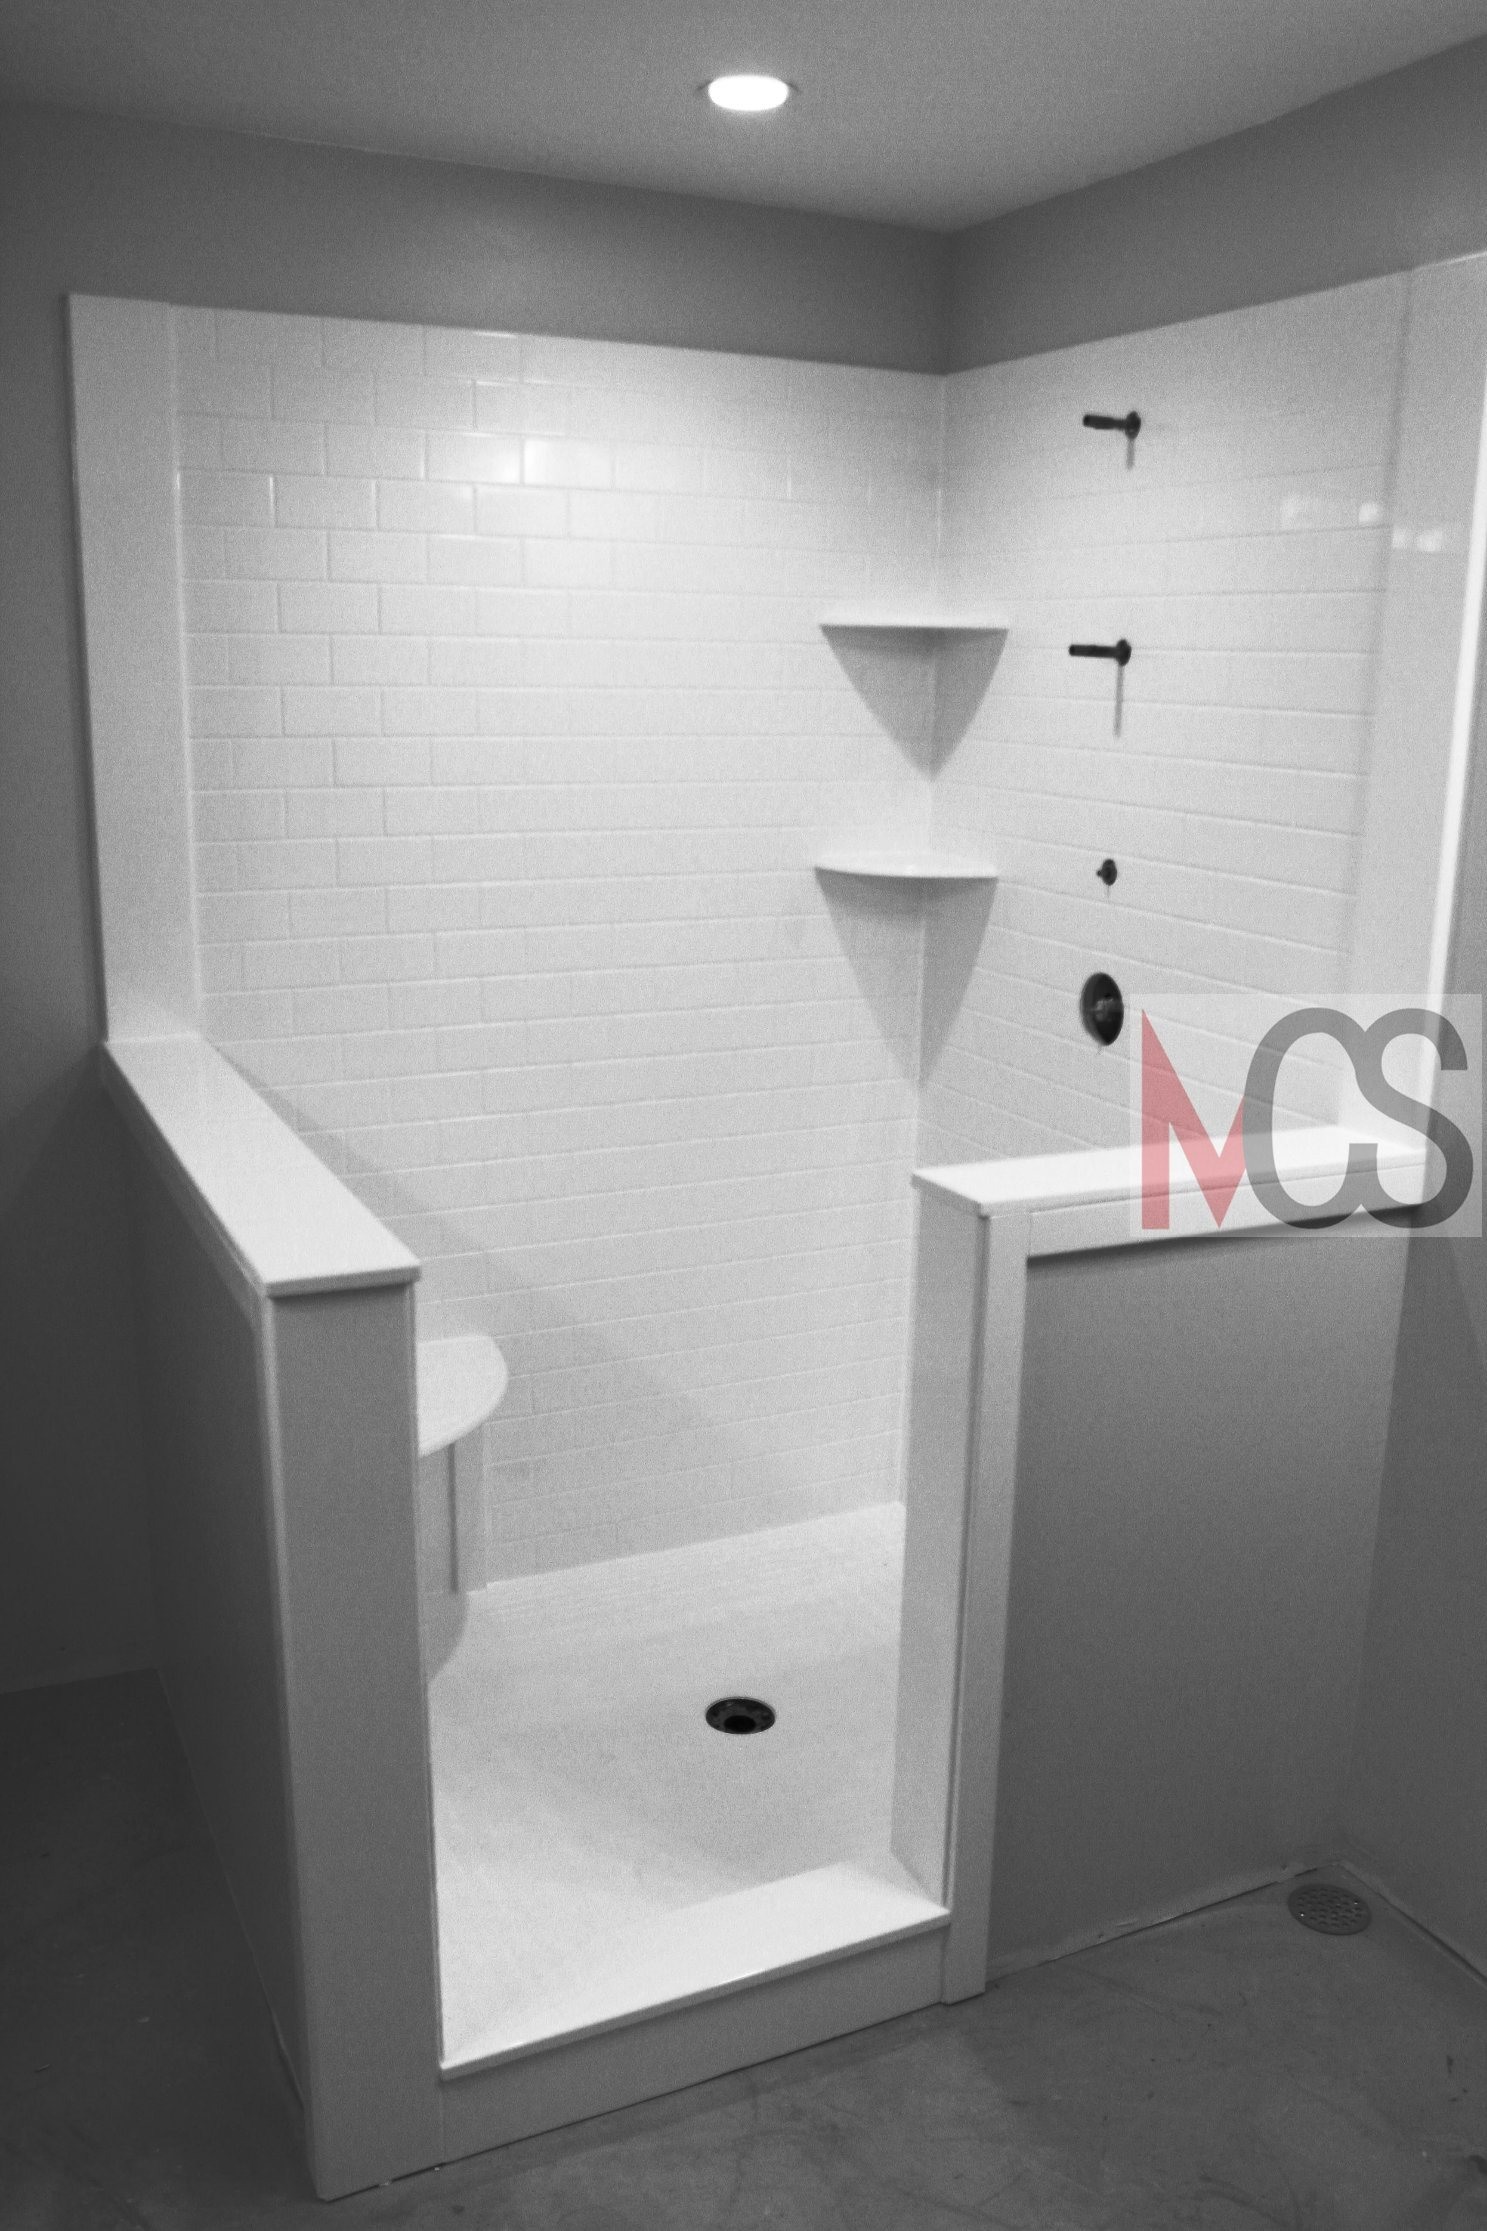 China Owned Cultured Marble Tub Shower Surround Manufacturers For Popular Hotel Bathroom China Cultured Marble Shower Surround Artificial Stone Tub Surround